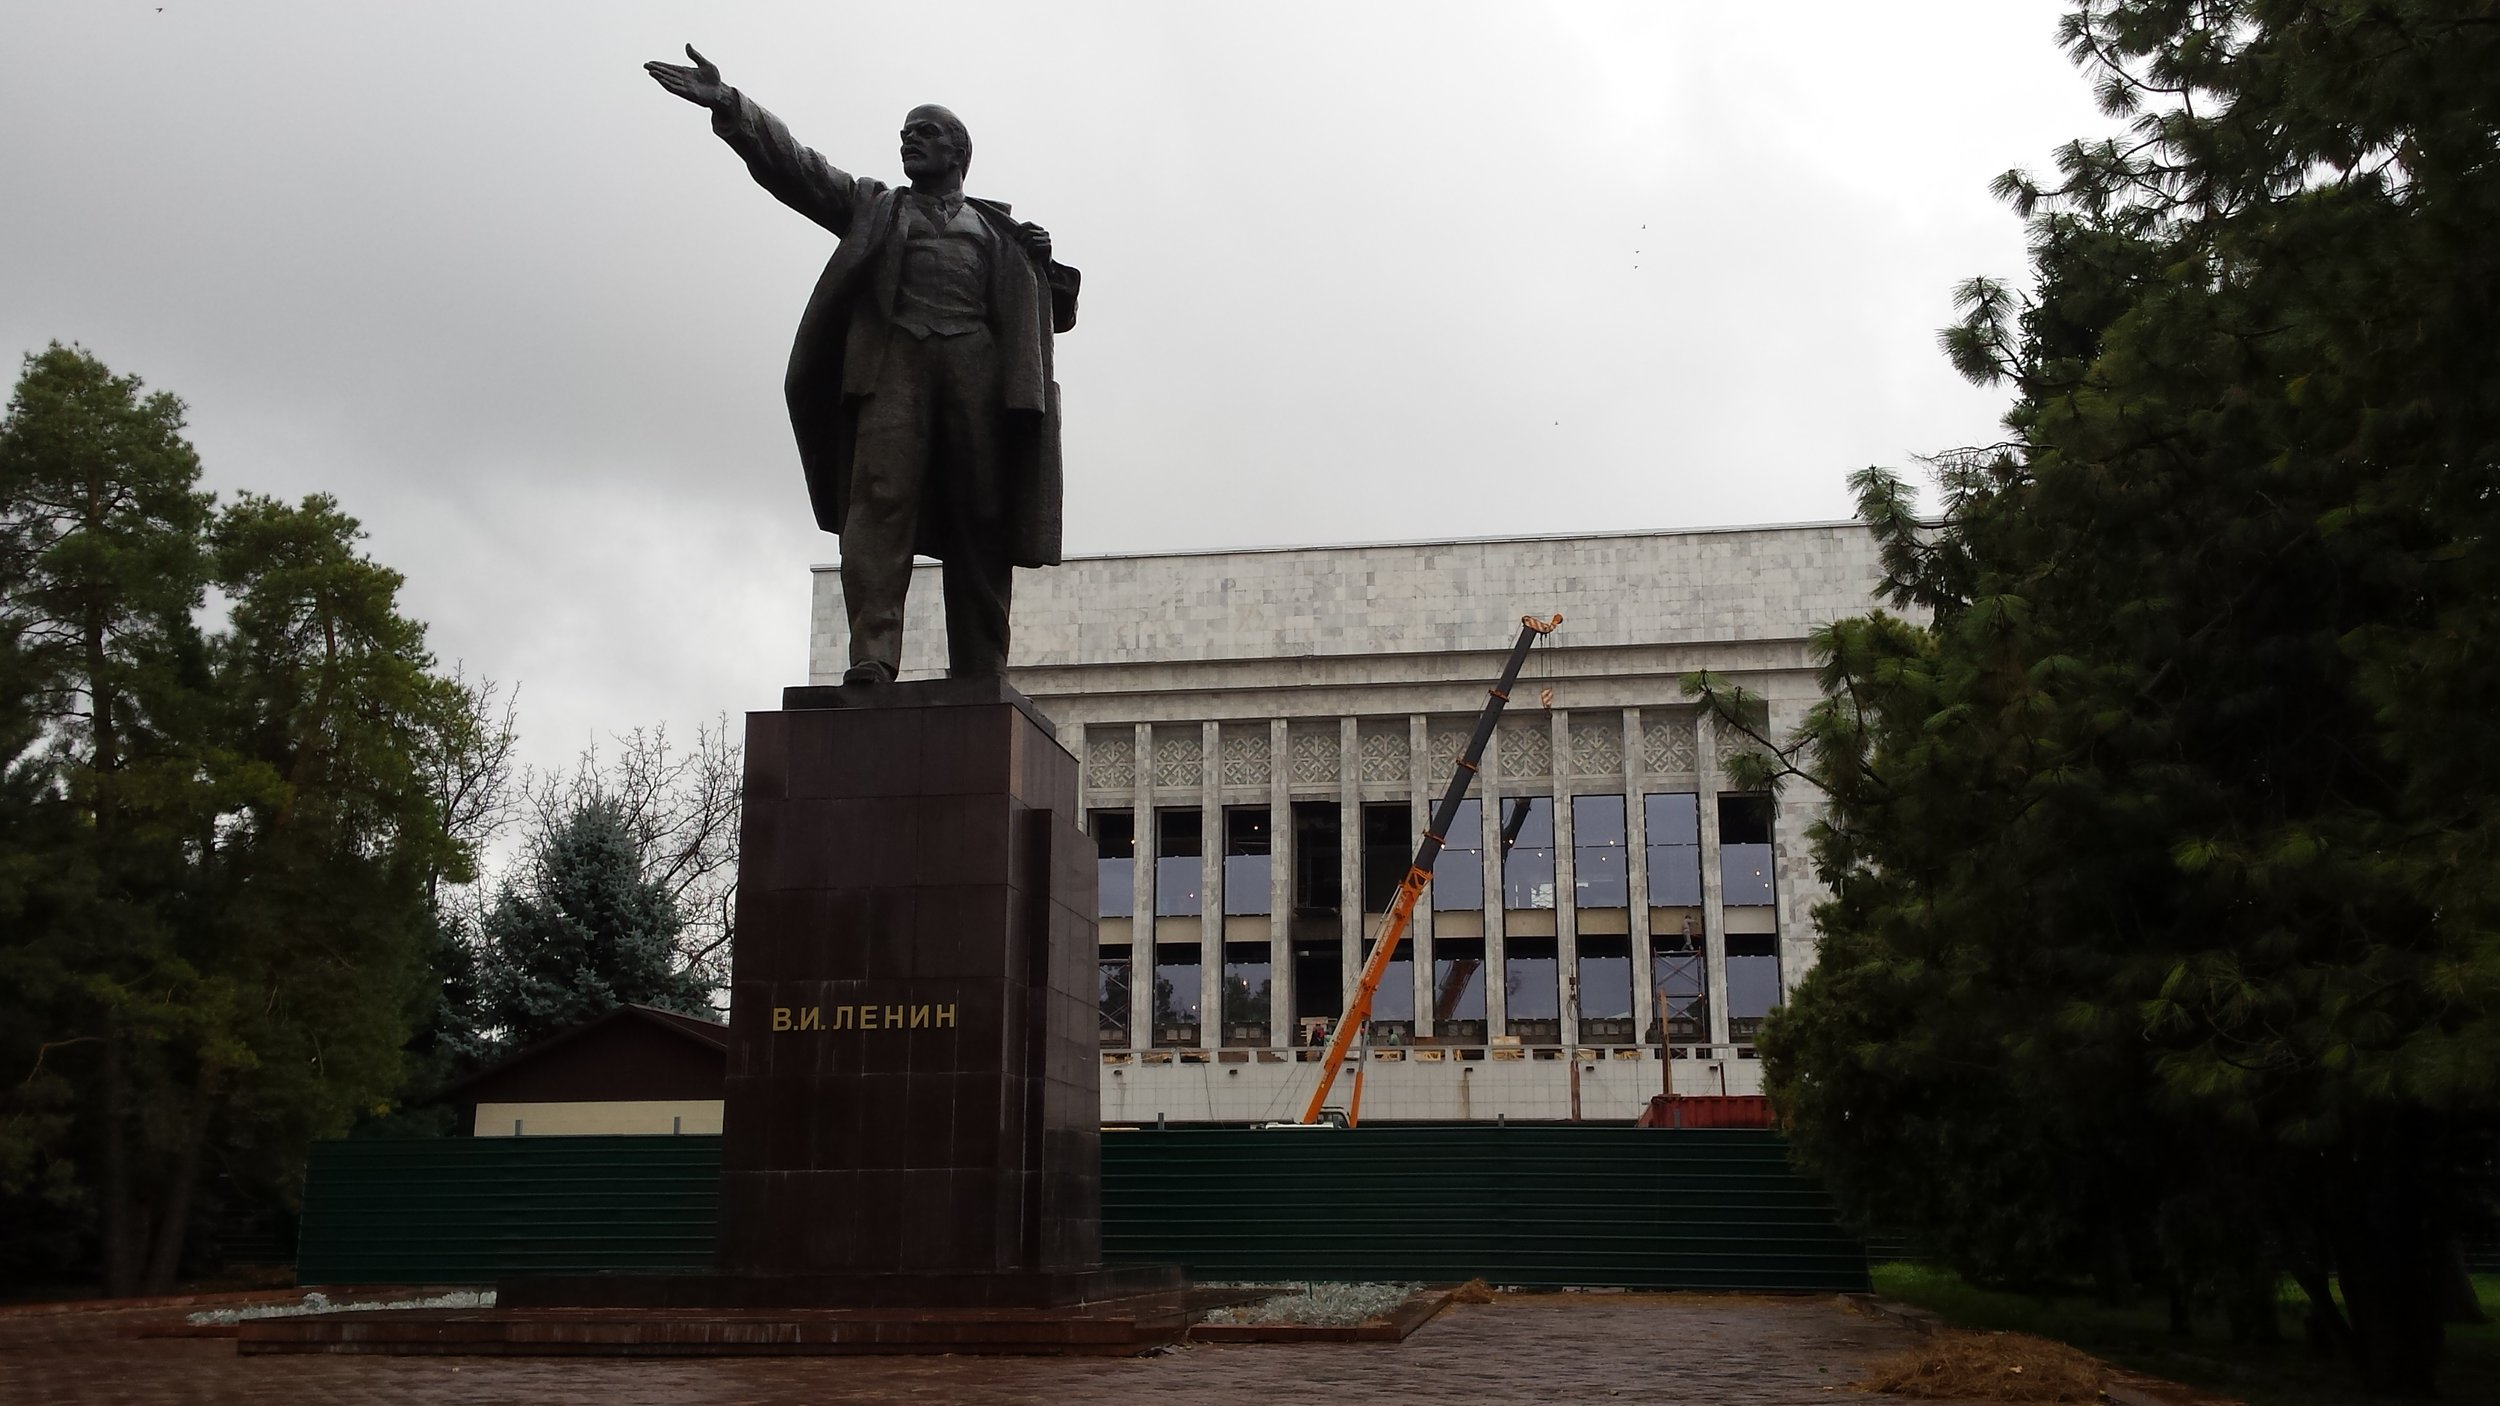 He may be relagated to behind the main square today, but he's still casting his net wide. Lenin in Bishkek.